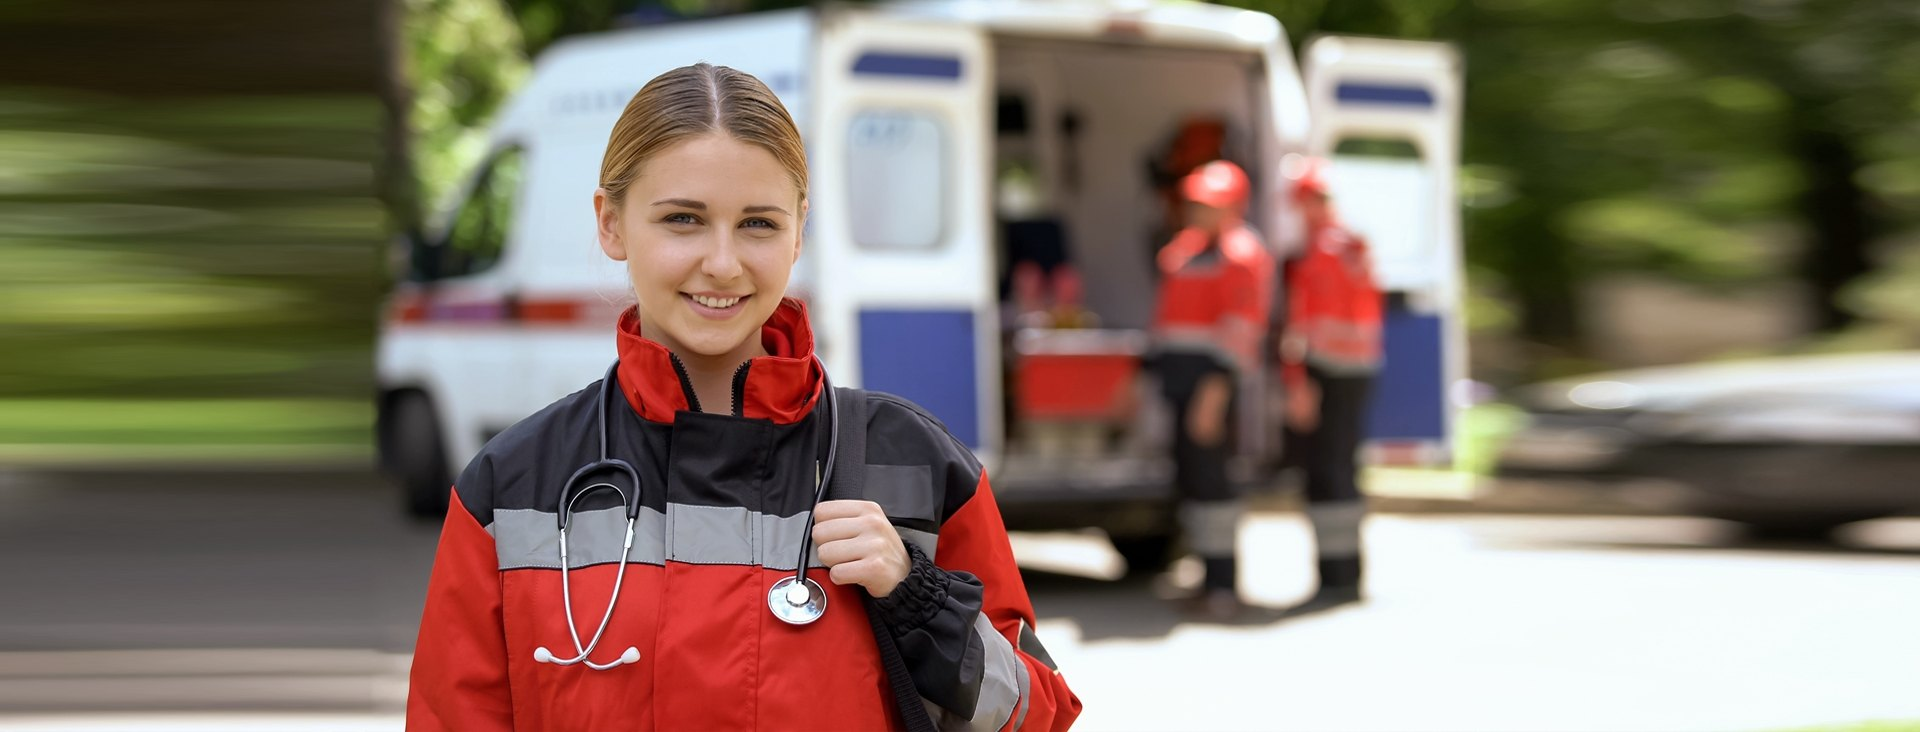 Ambulance USA - About Us - Air Ambulance | Global Medical Response | International Emergency Medical Services| Non-Emergency Ambulance Transportation | EMS Transportation